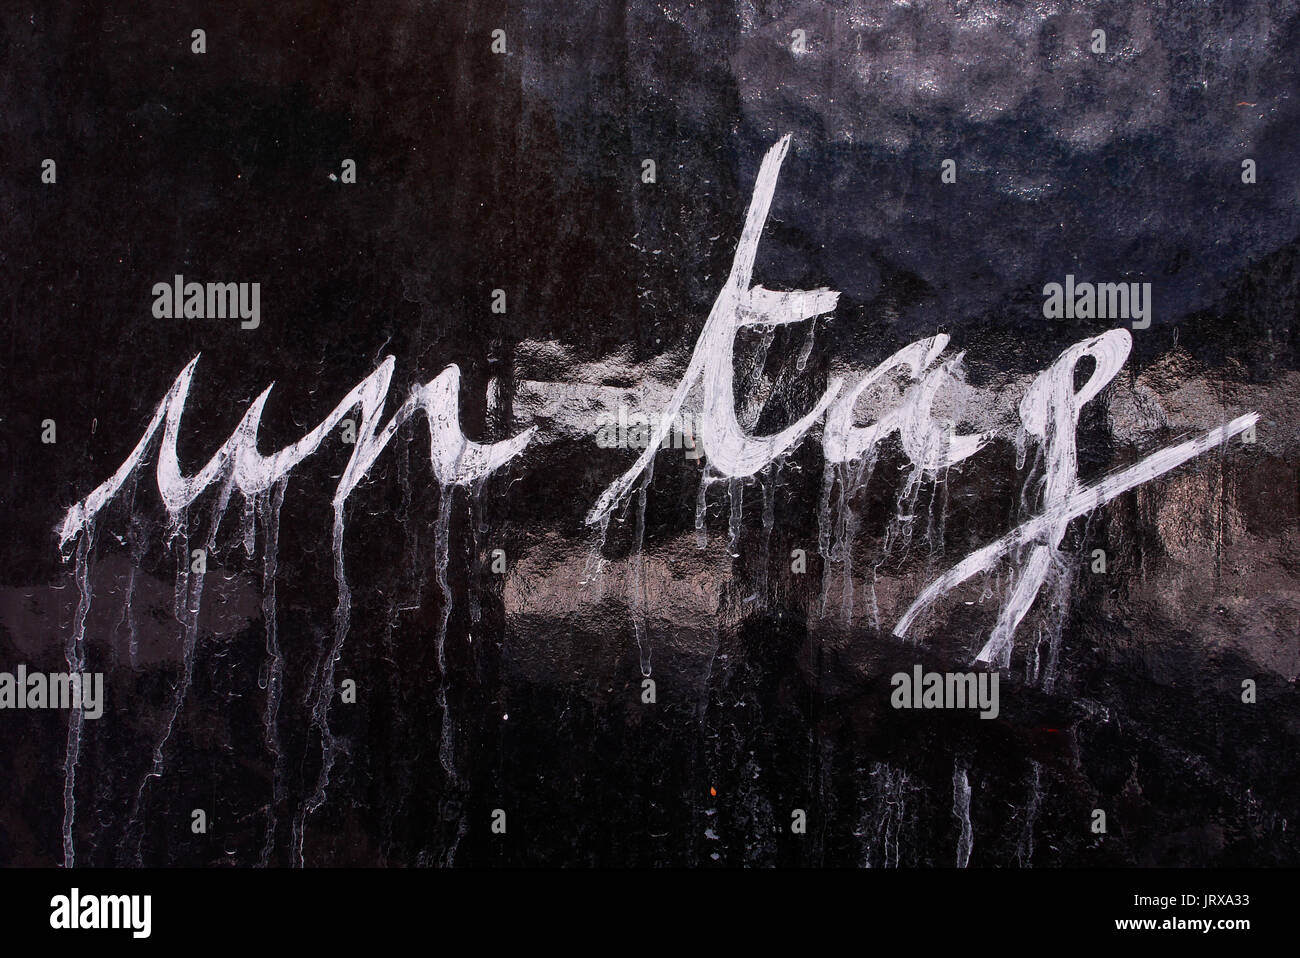 A Tag reading 'A tag' on a wall of Saint-Claude, Franche-Comté, Jura (France) - Stock Image